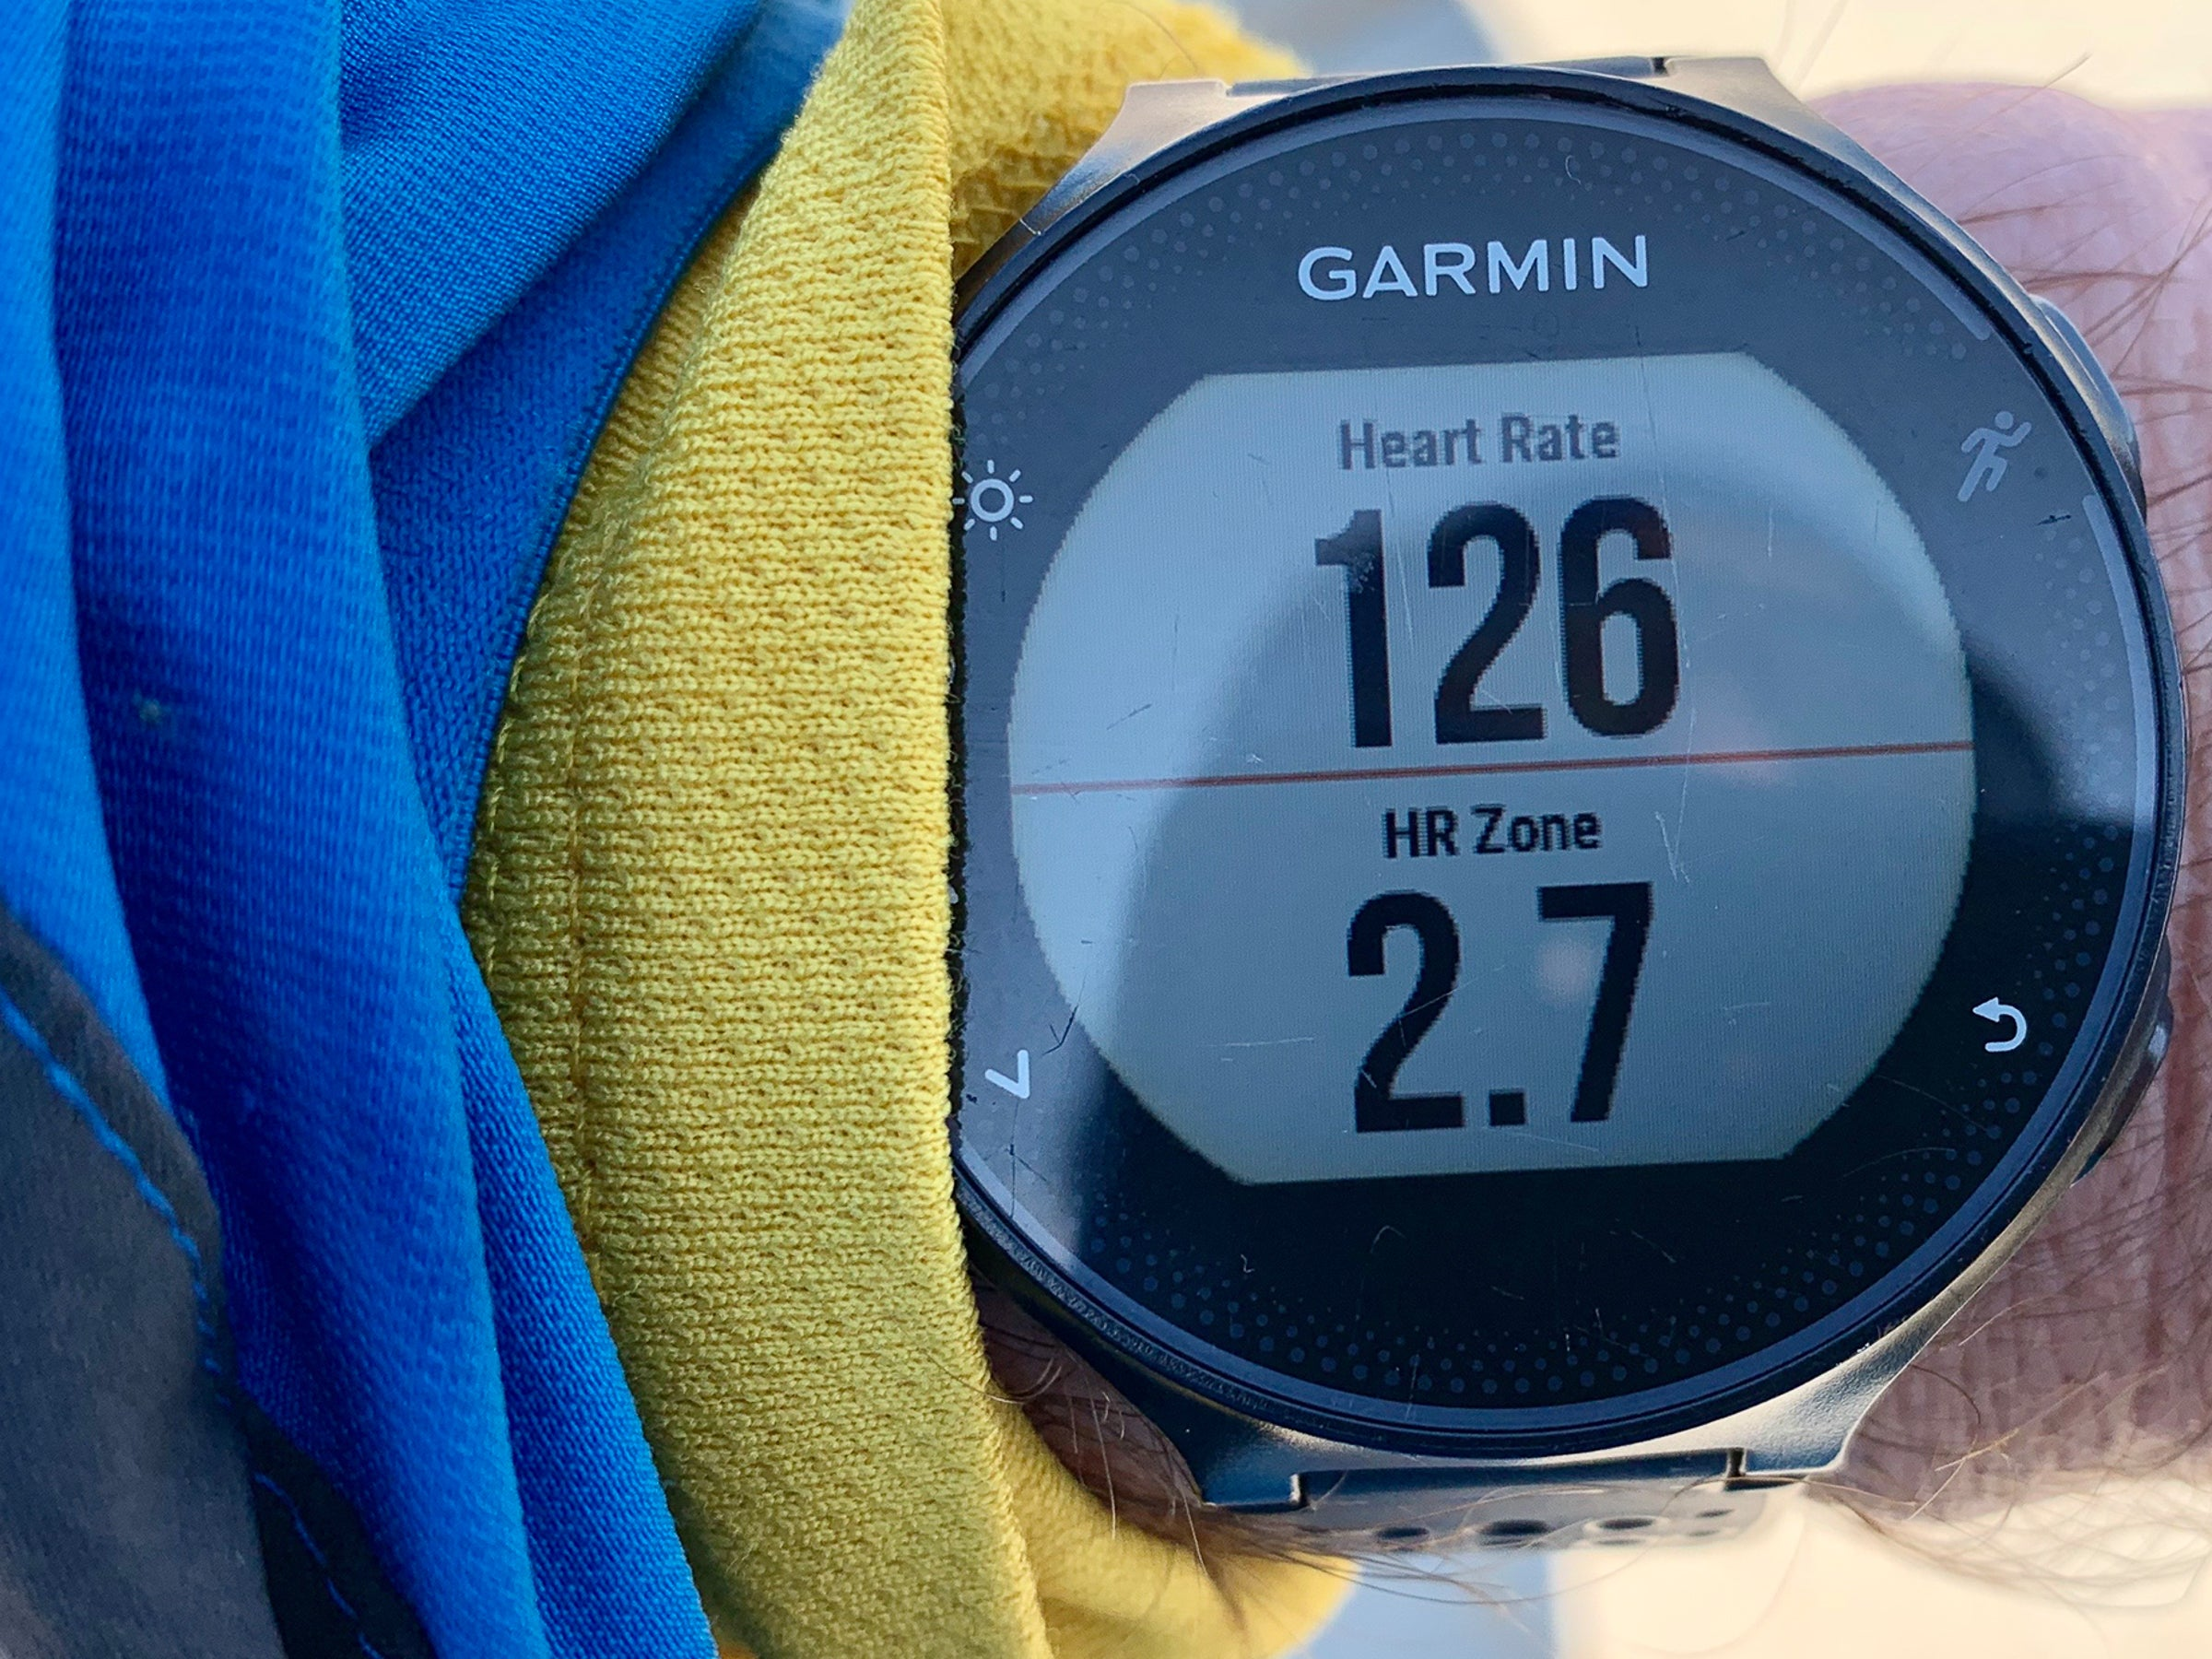 Garmin watch showing heart rate and zones